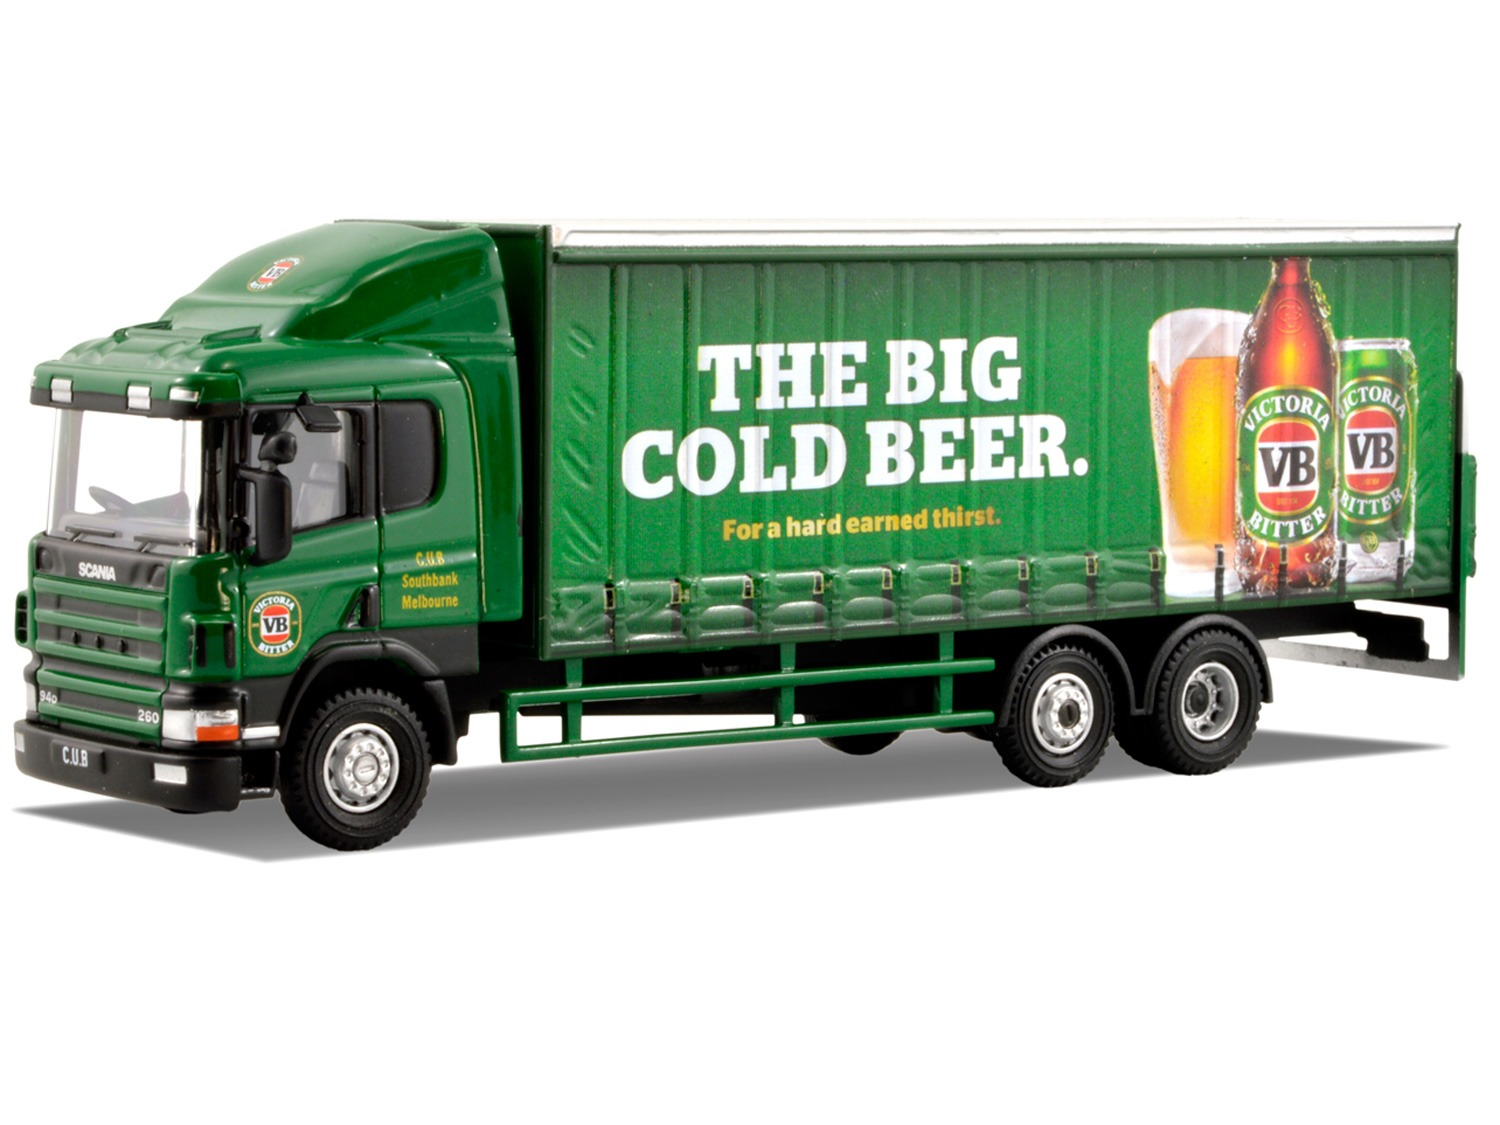 Scania Truck – VB Beer – Green